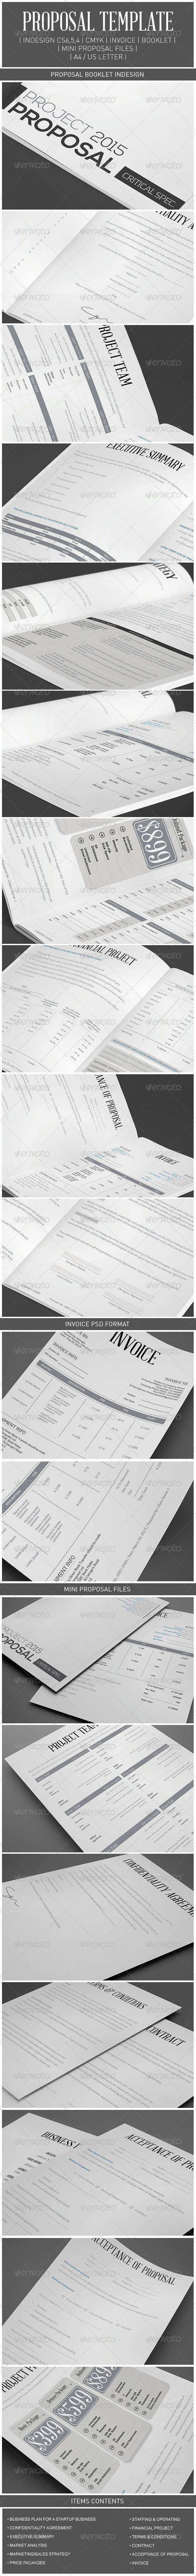 Proposal Template Package - Proposals & Invoices Stationery